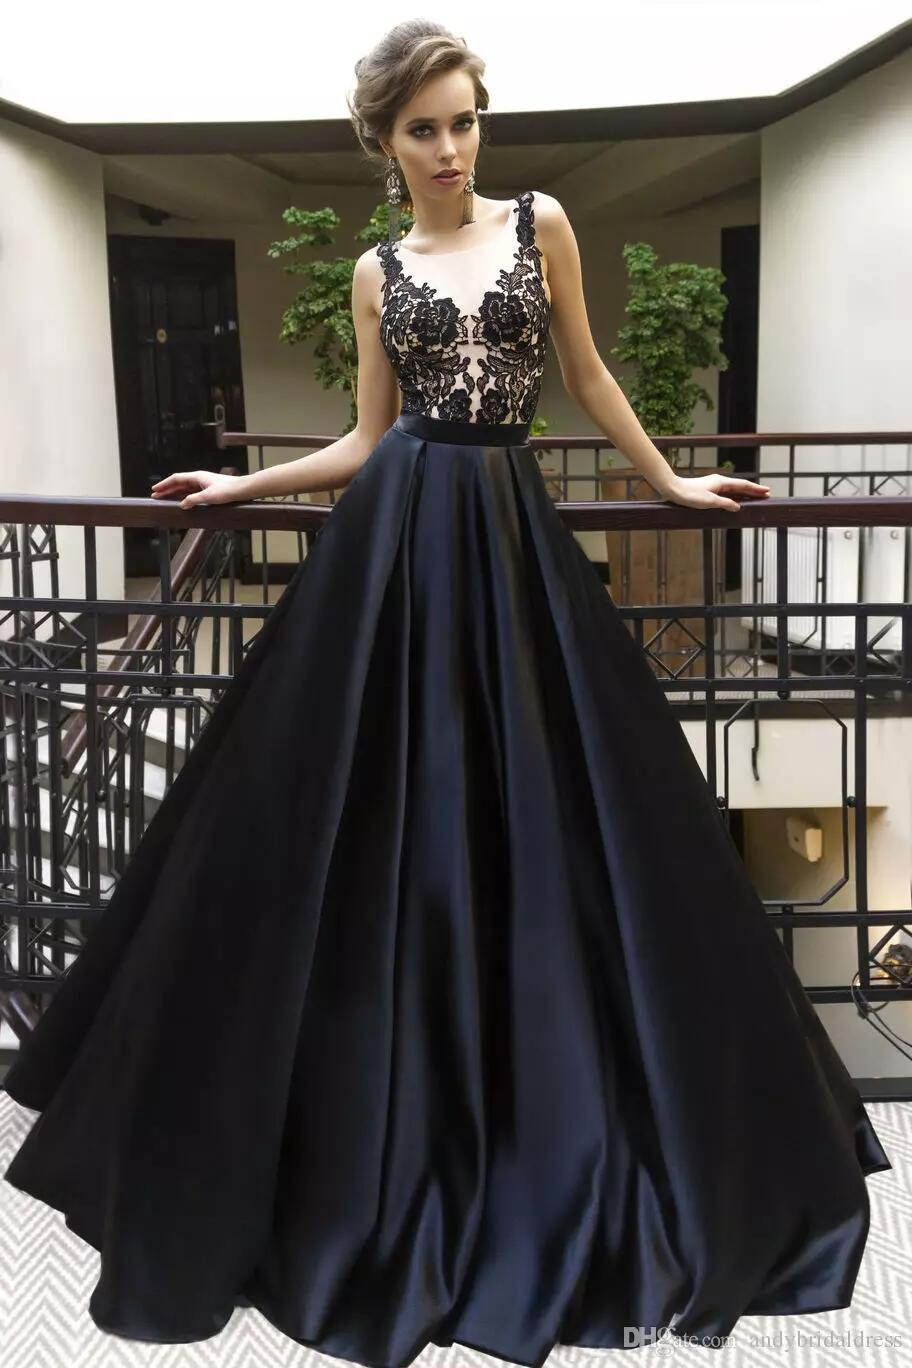 Black Prom Dress 2018,Prom Dresses,Evening Gown, Graduation Party ...